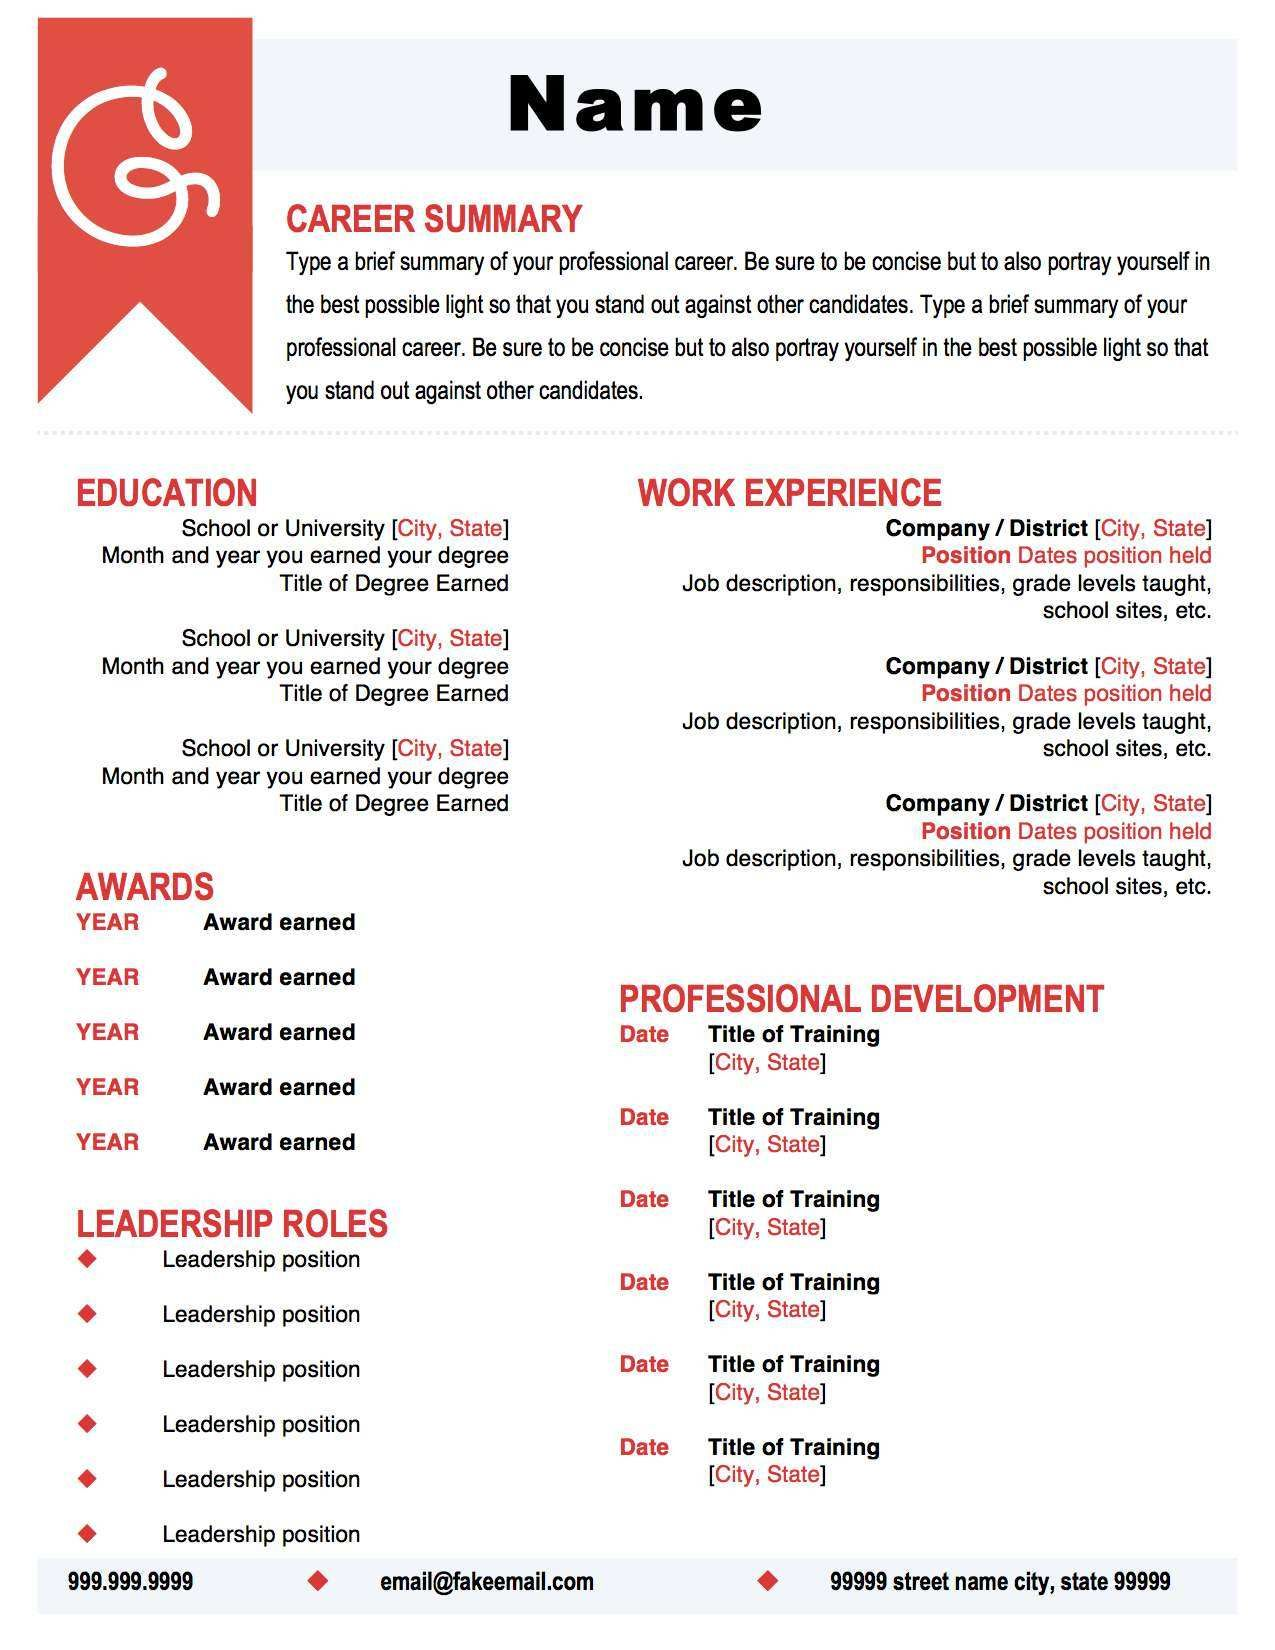 Coral and Black Resume Template. Make your resume pop with